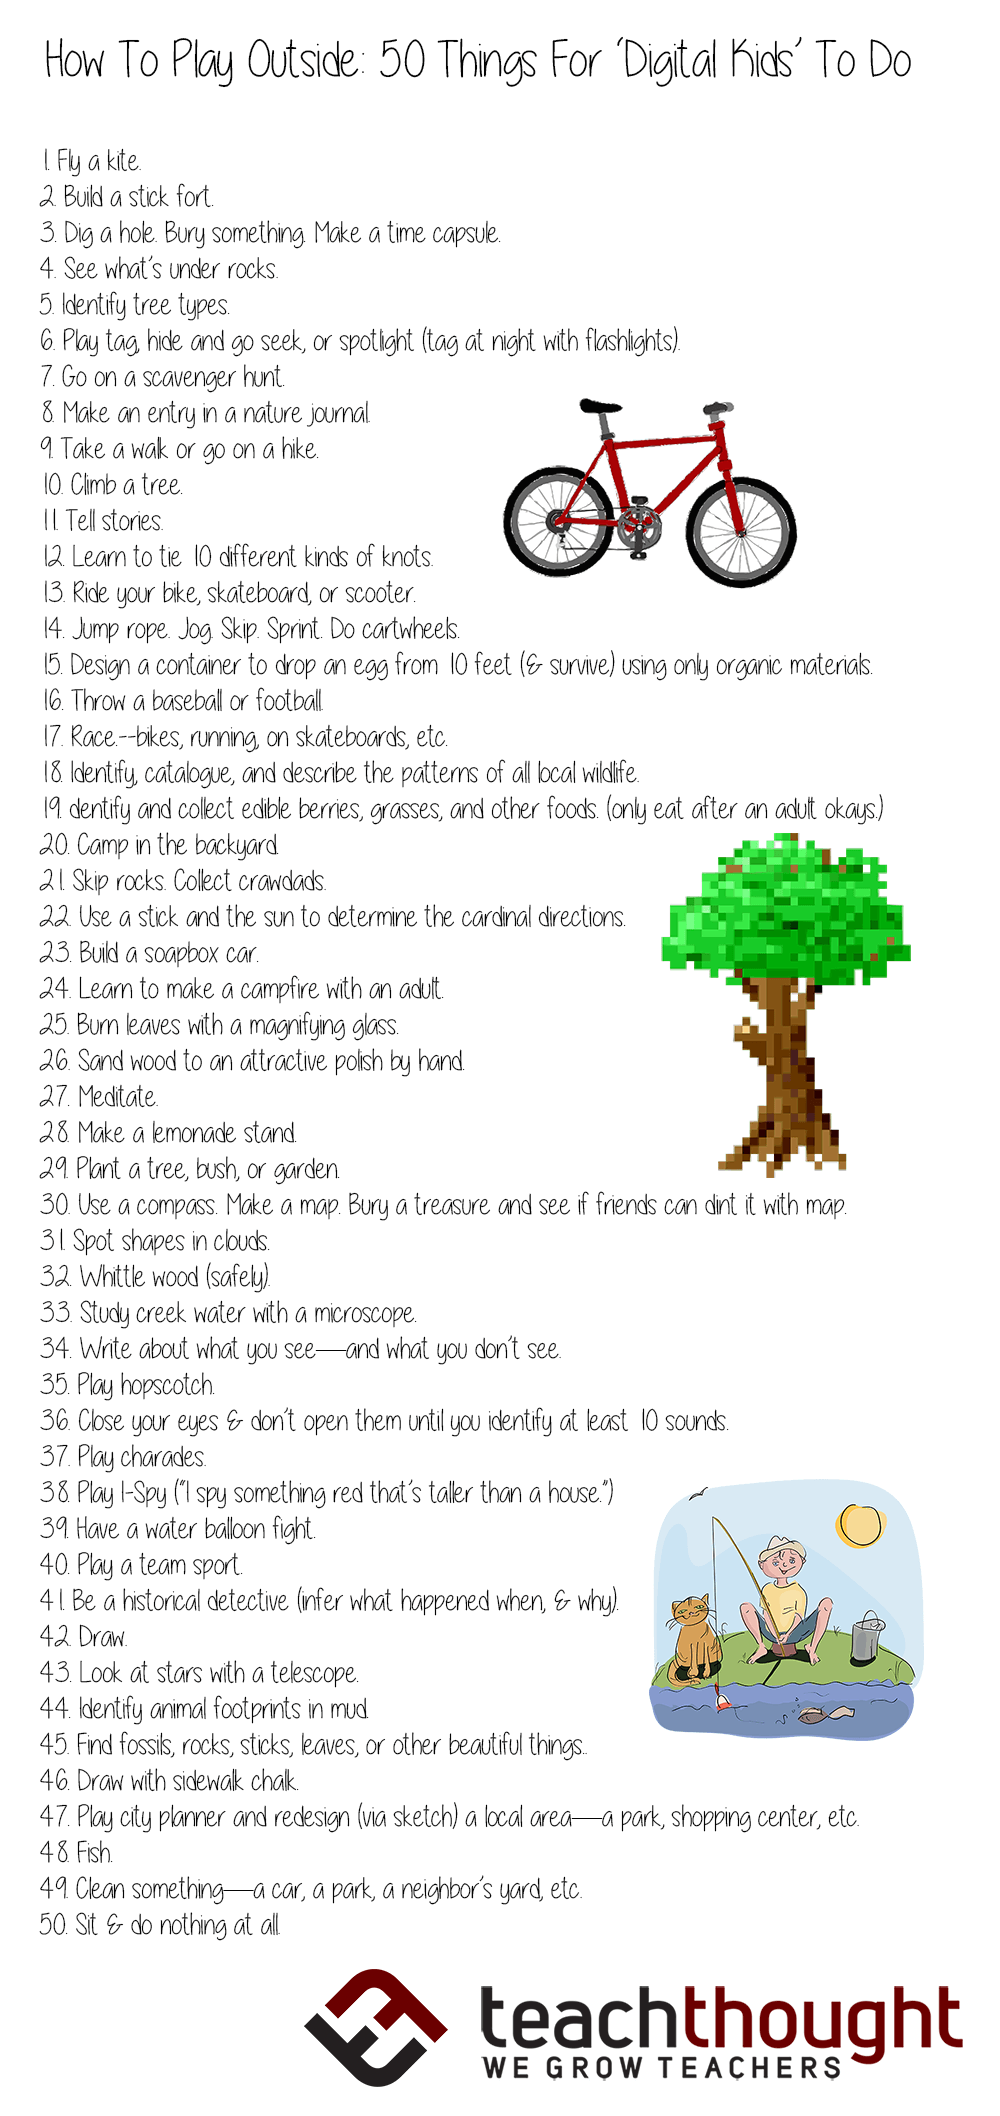 How To Play Outside 50 Things For Digital Kids To Do